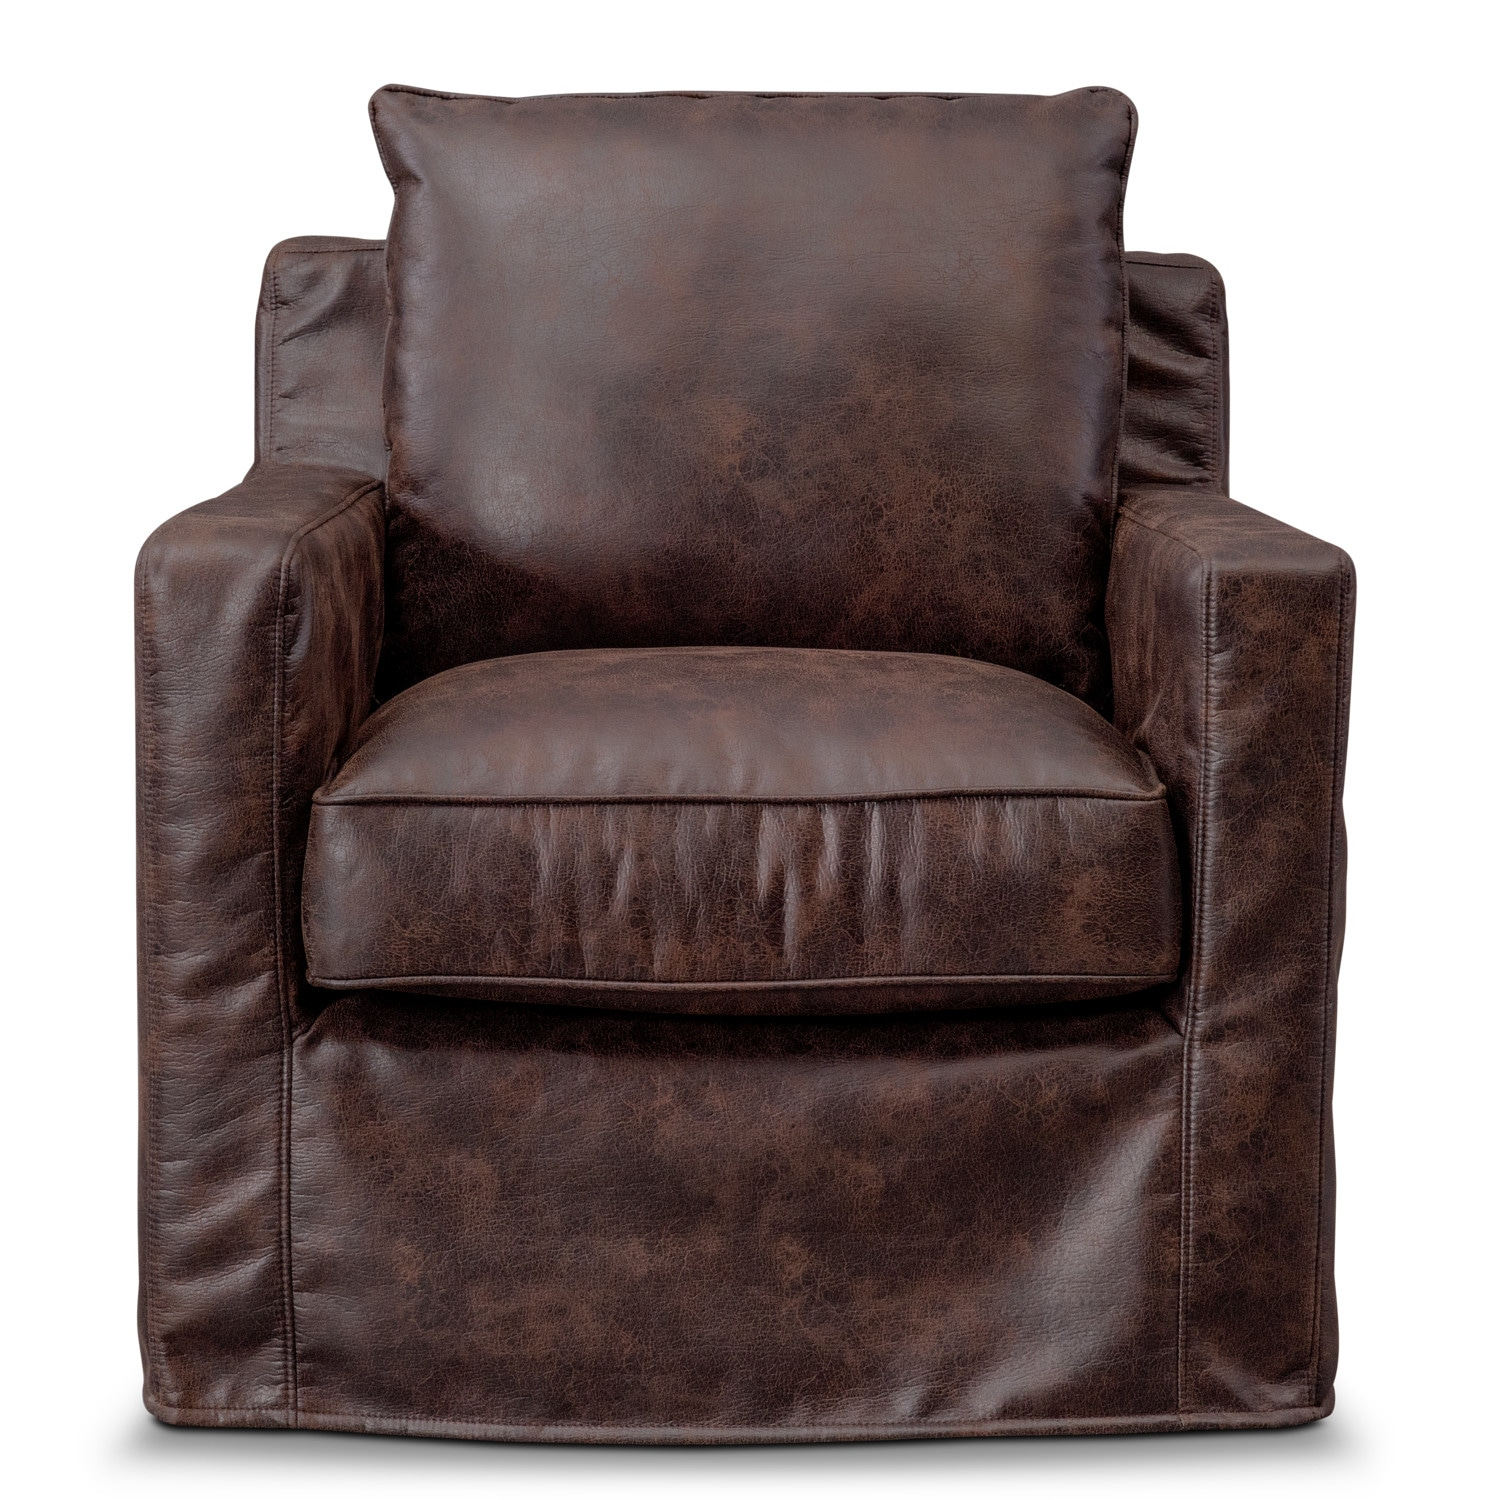 Eastwood Swivel Chair - Coffee | American Signature Furniture in Loft Black Swivel Accent Chairs